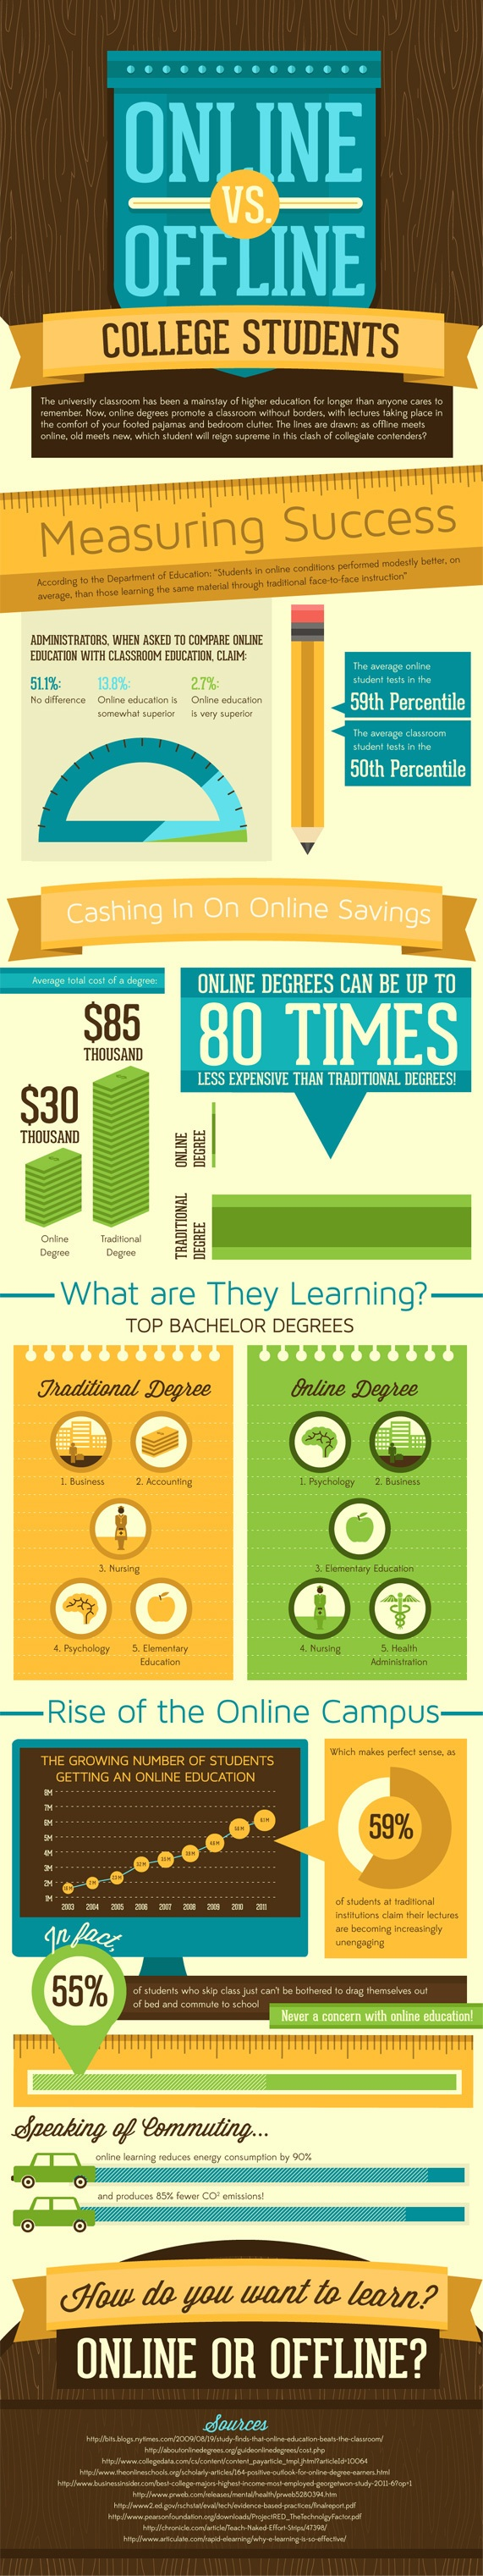 Online-vs-Offline-College-Students-Infographic